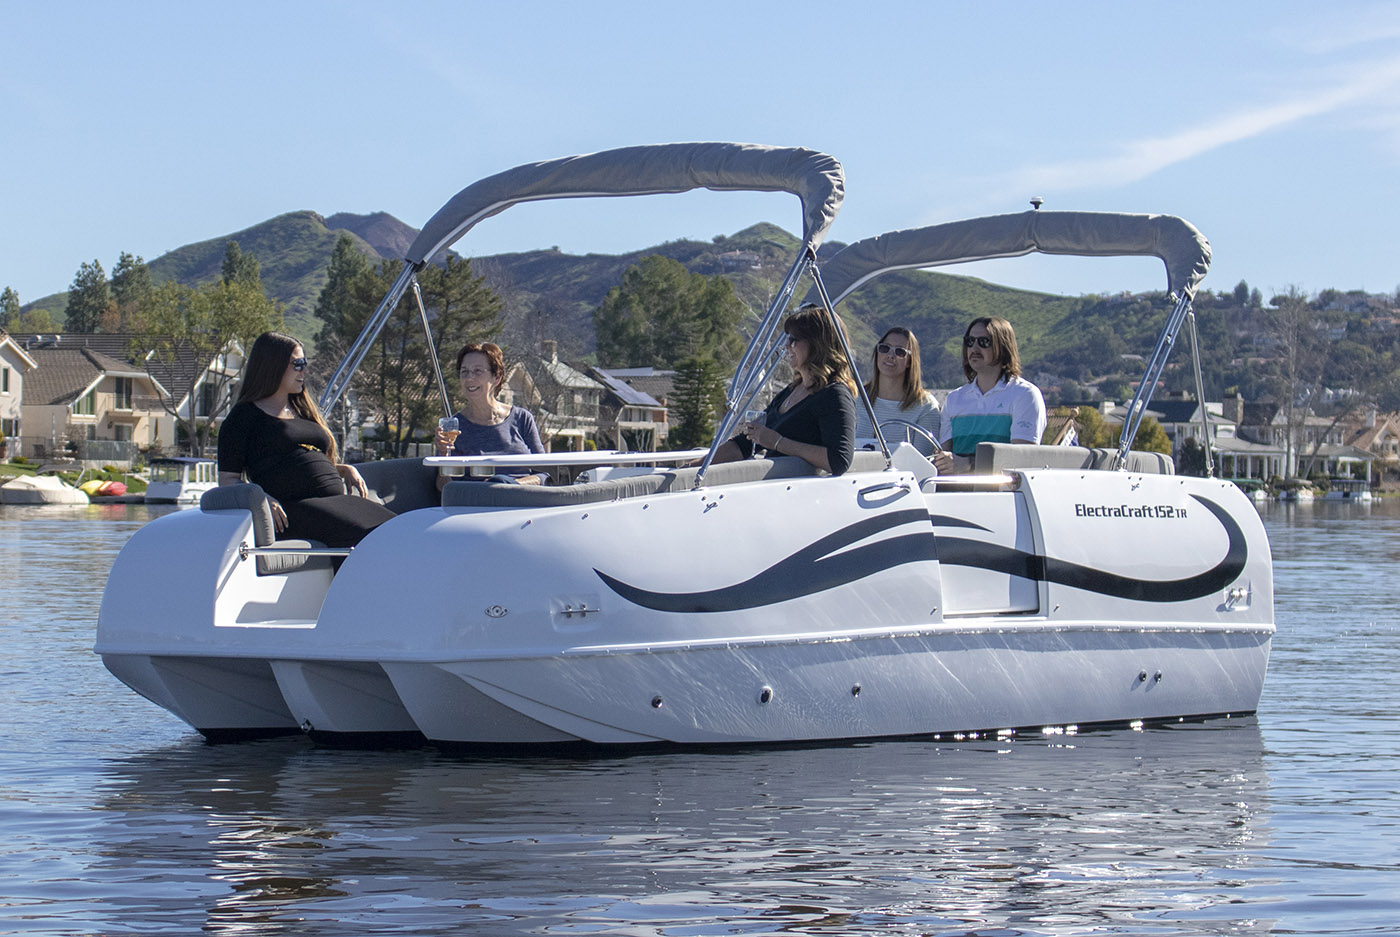 ElectraCraft – The Leading Manufacturer of Electric Power Boats